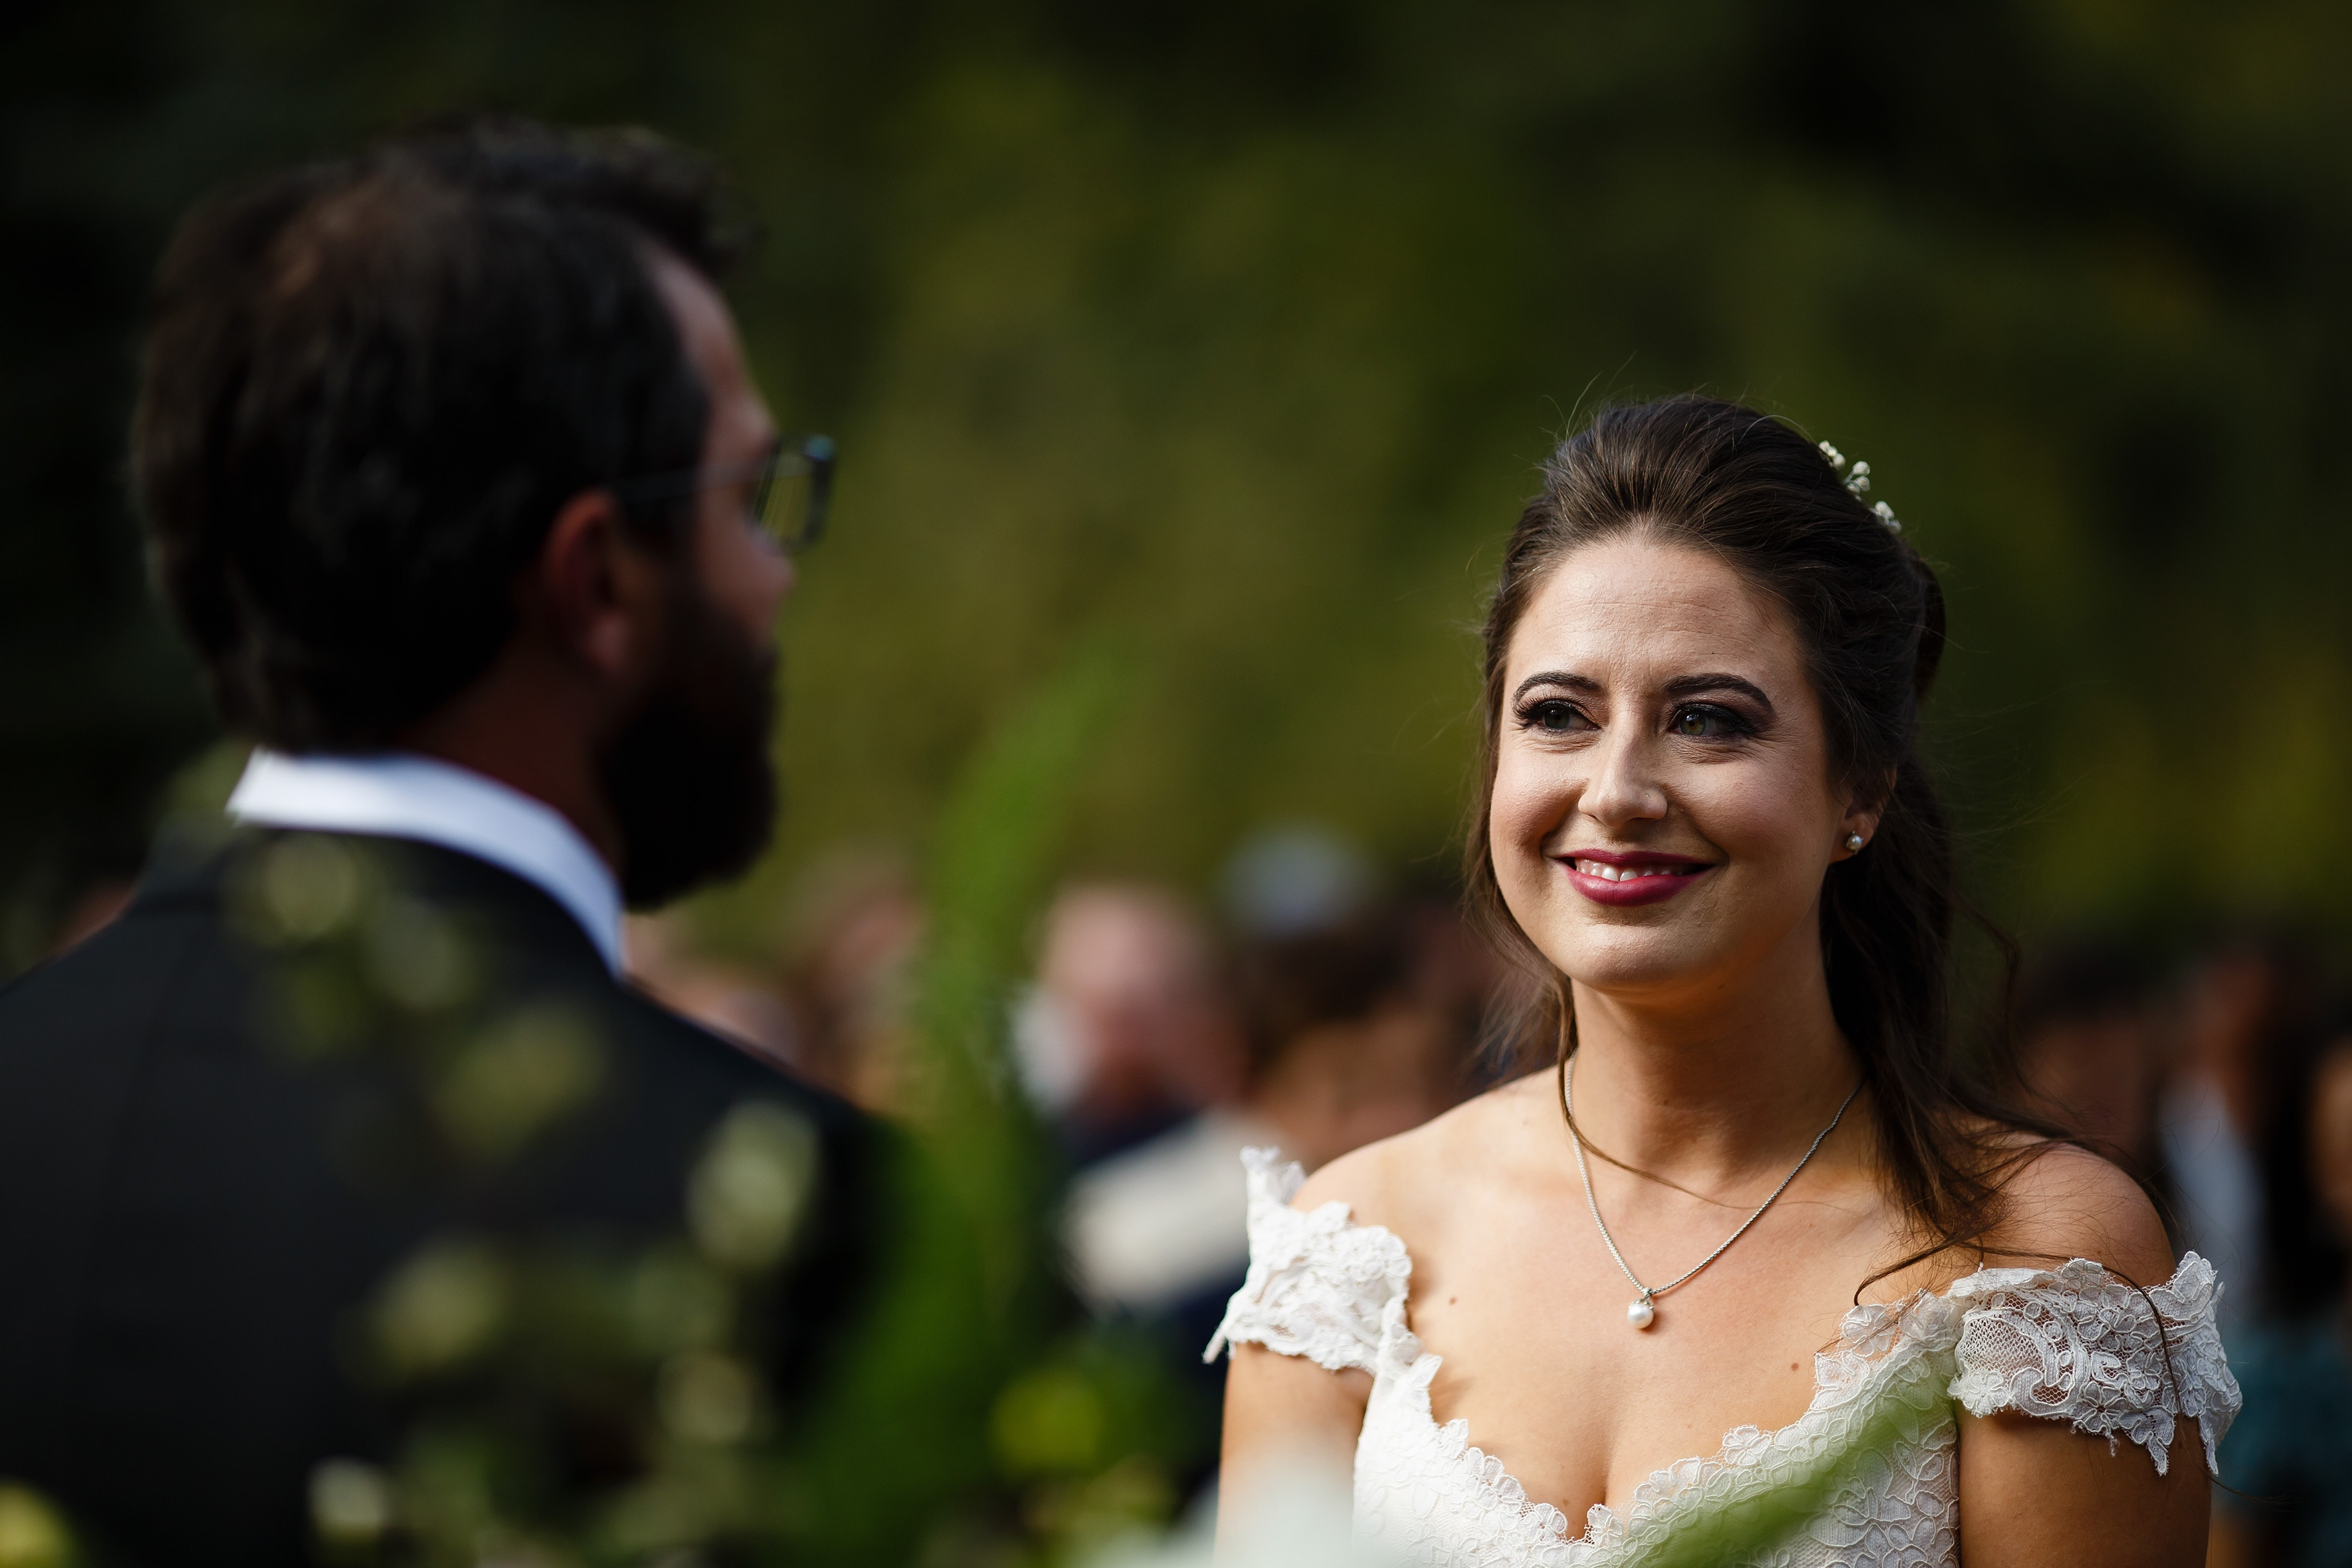 Mallory looks at Daniel during their ceremony